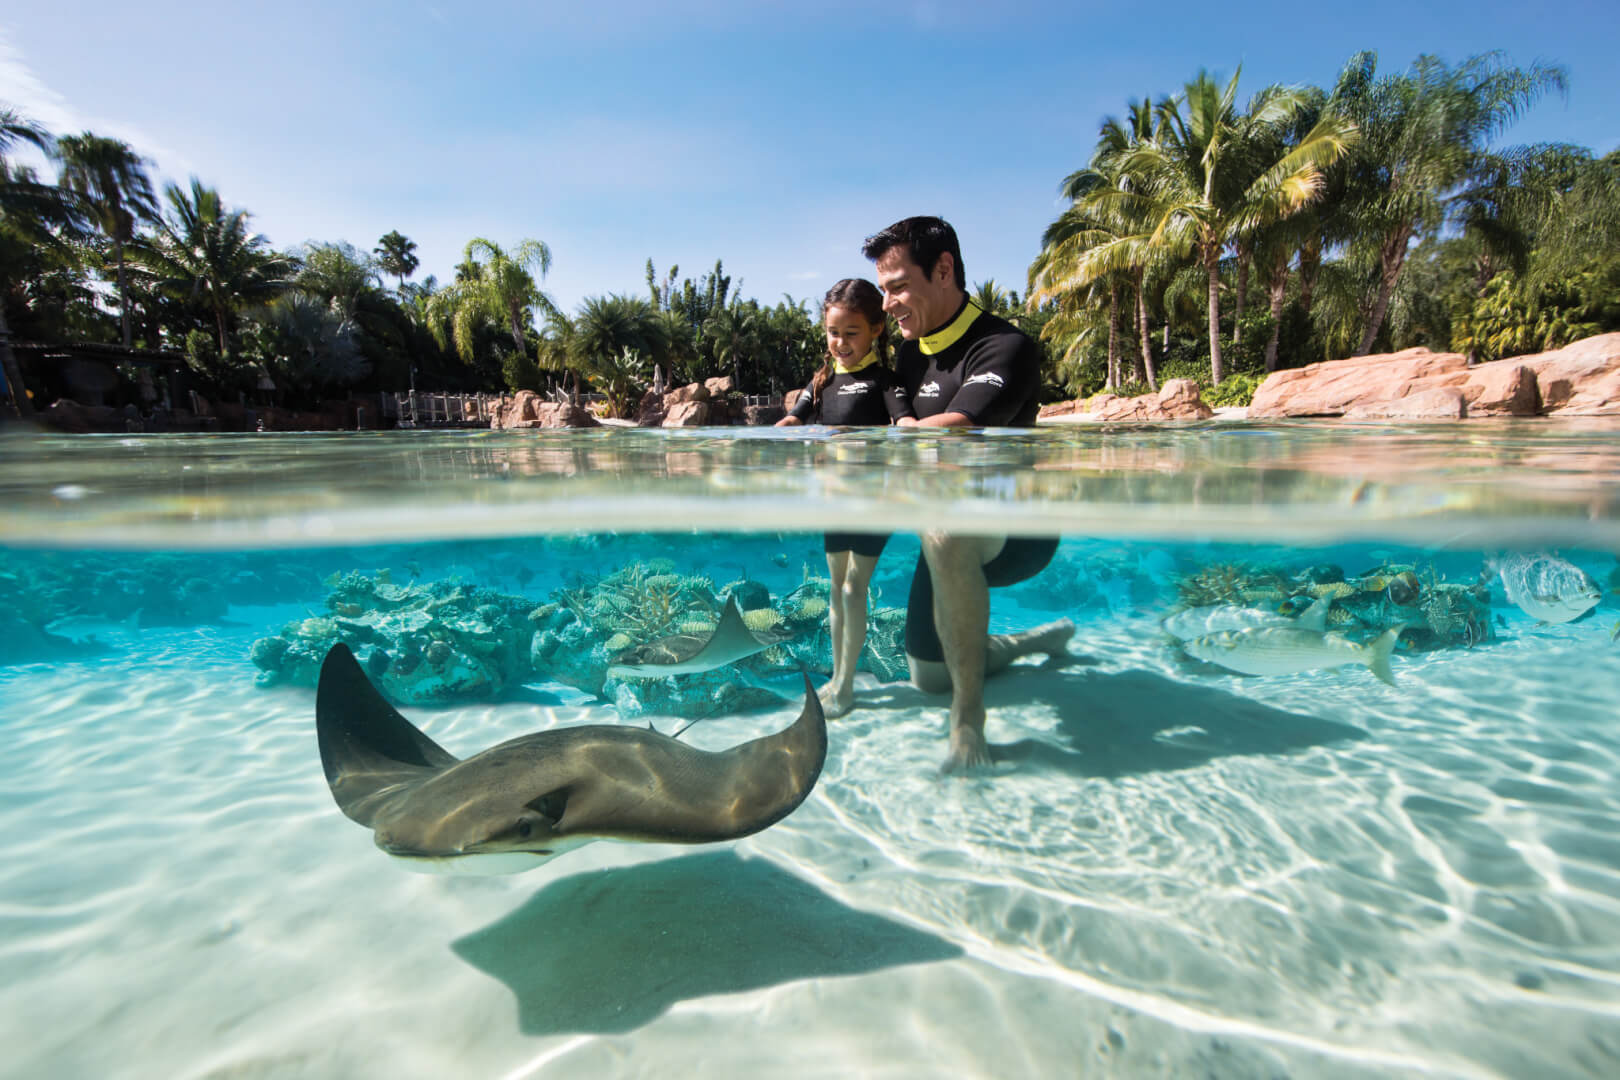 Seaworld Orlando Tickets And Hotel Packages